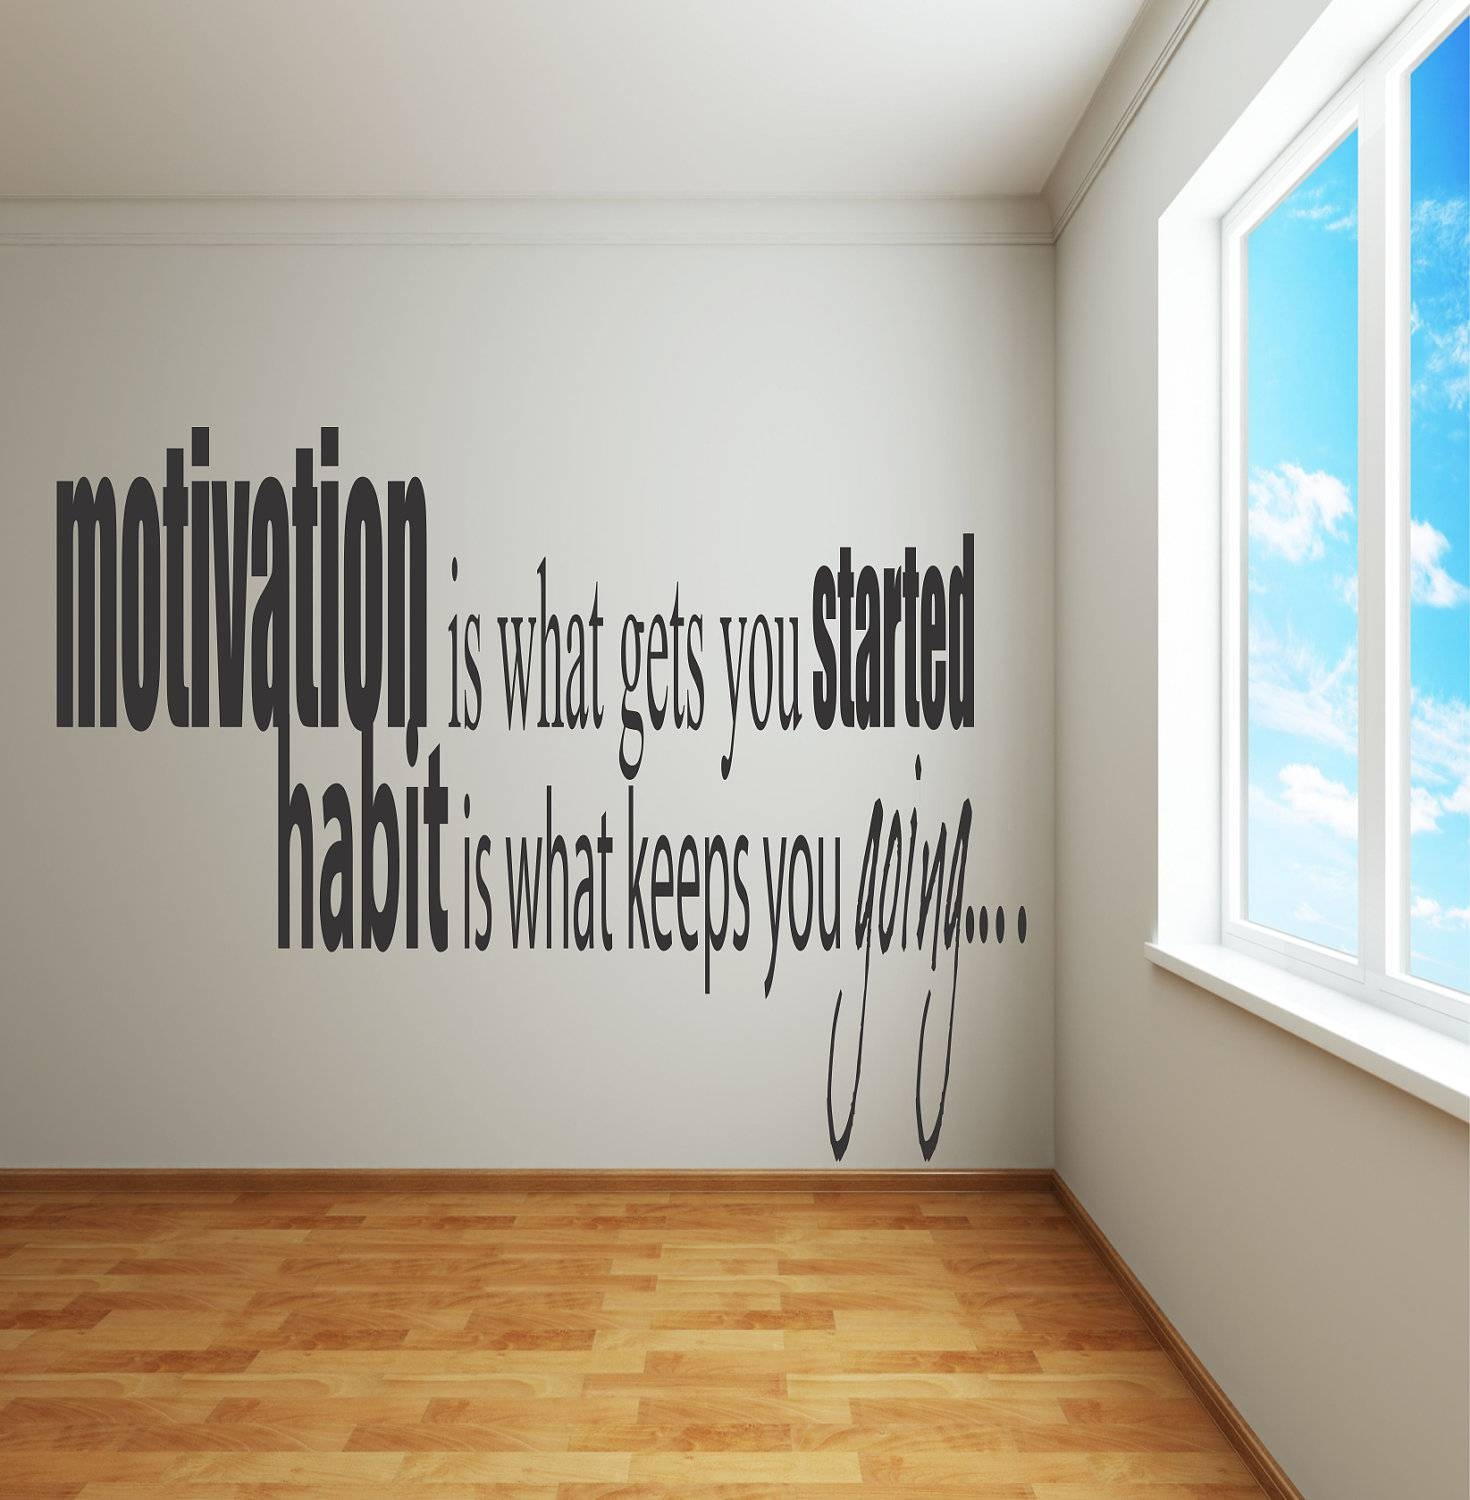 Adhesive Wall Decals Motivation Is What Gets You Within Most Current Inspirational Wall Decals For Office (View 1 of 20)